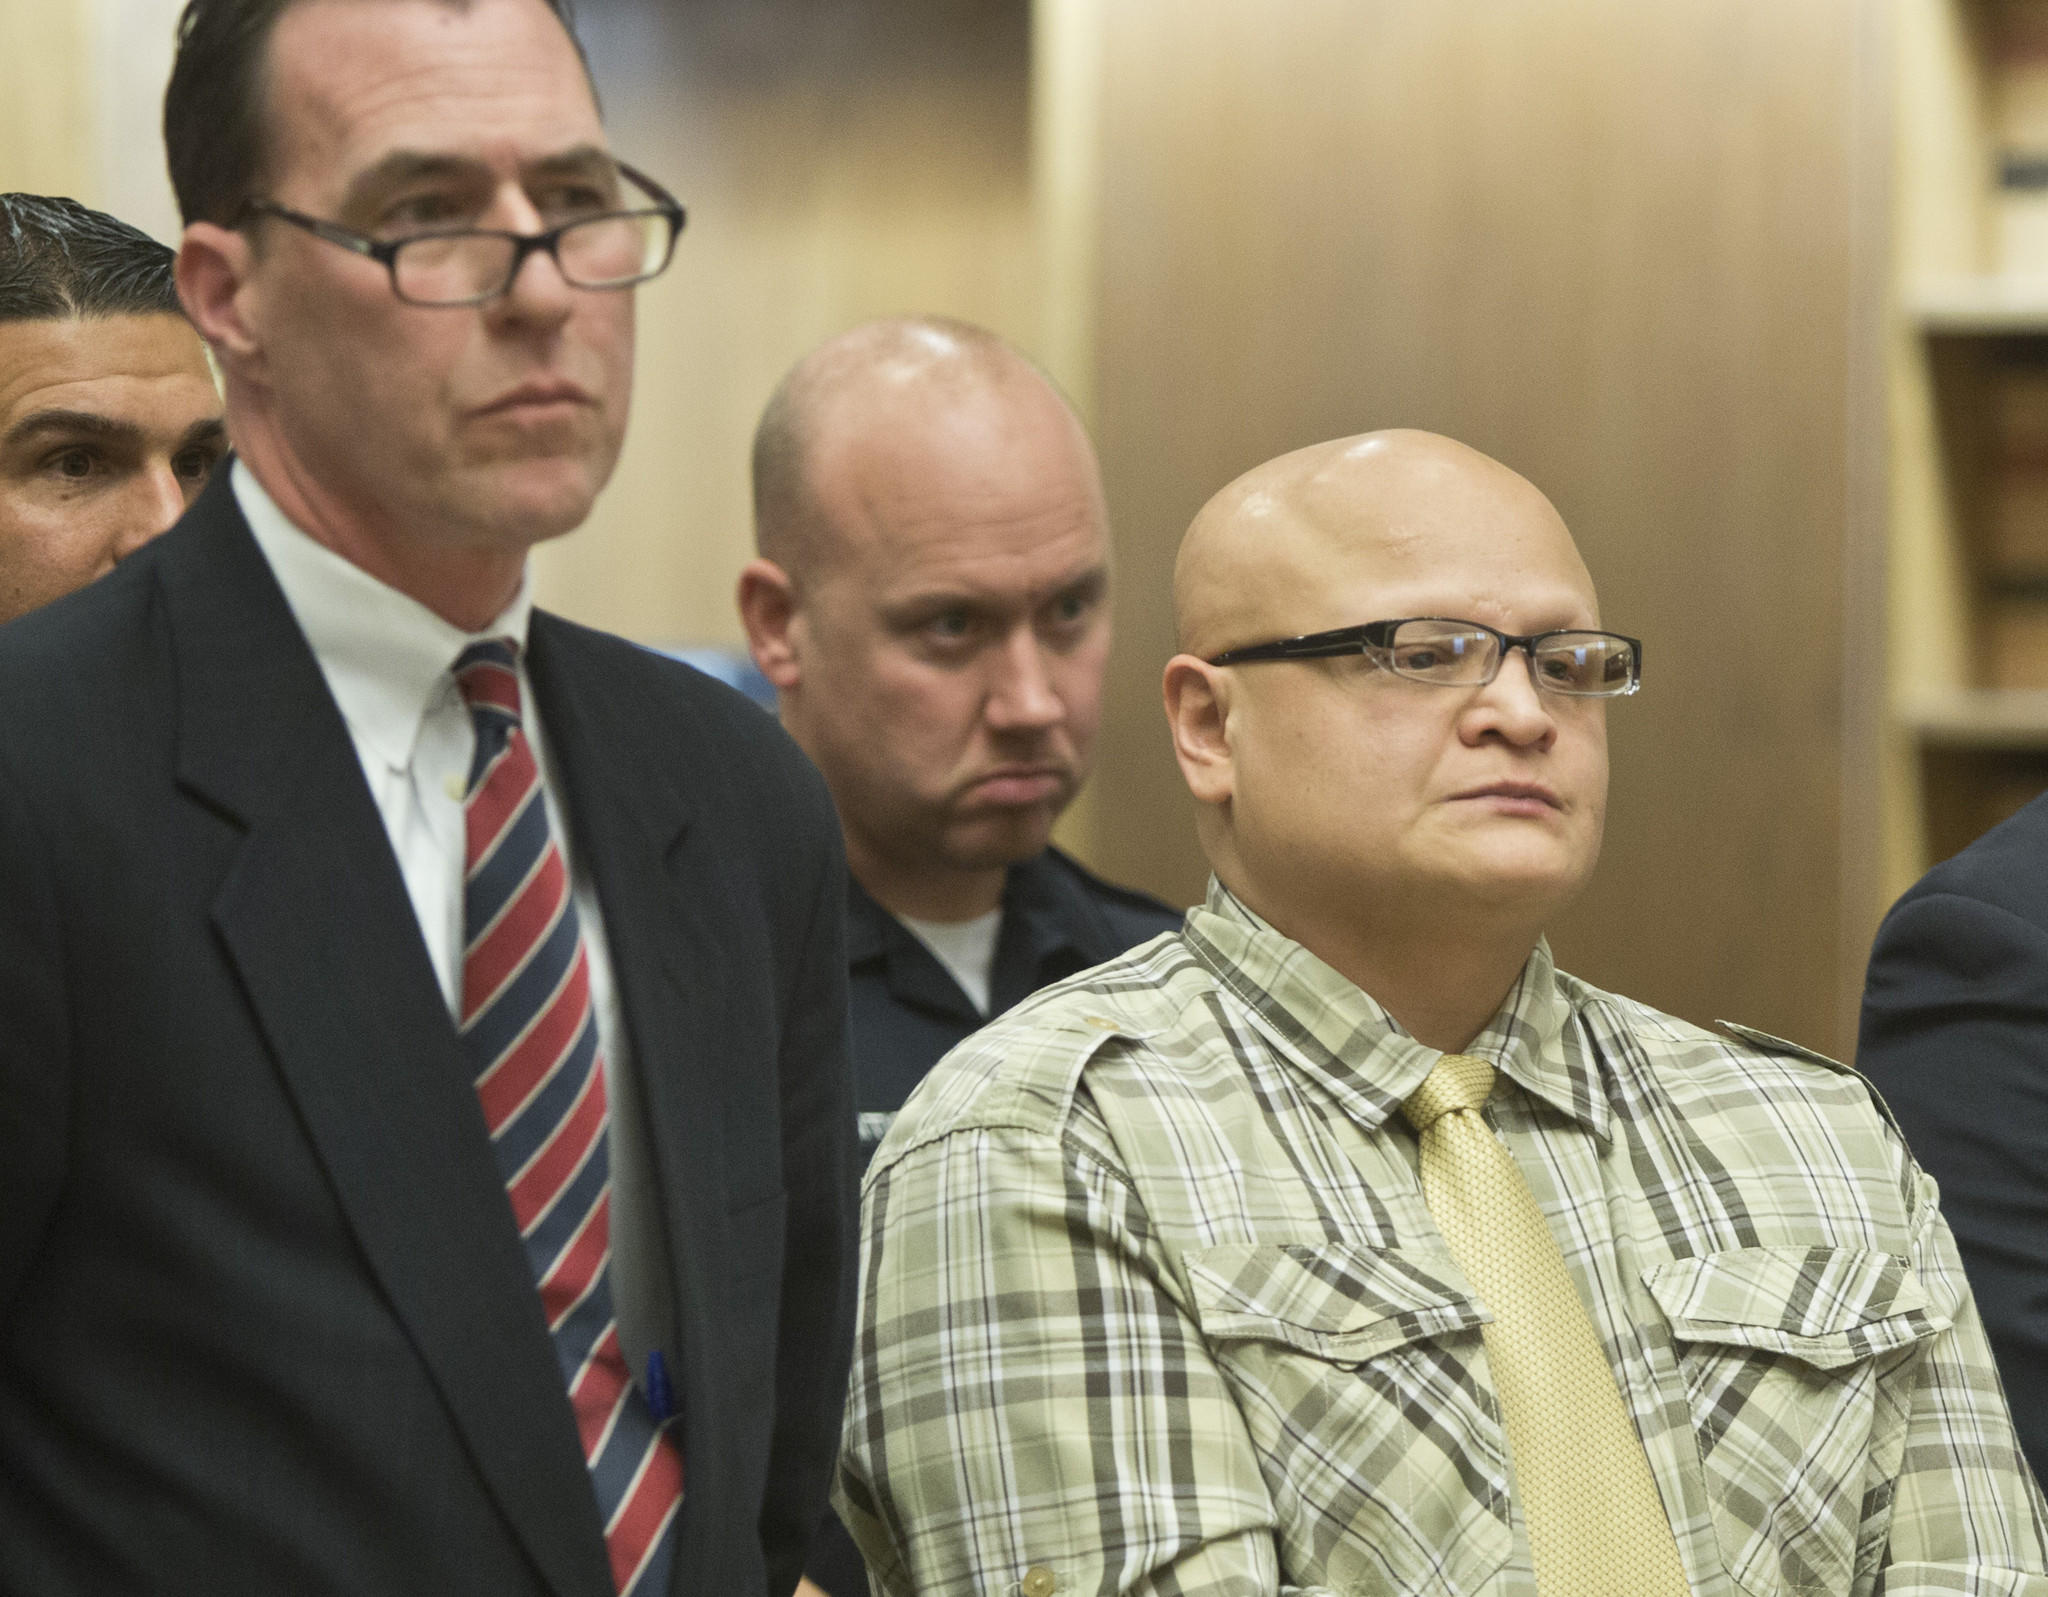 Frankie Resto, at right, standing next to his attorney Glenn Conway, receives a sentence of 53 years in prison for the murder of Ibrahim Ghazal from Judge Patrick Clifford at Superior Court in New Haven, Friday, Feb. 28, 2014. | Christopher Zajac / Record-Journal